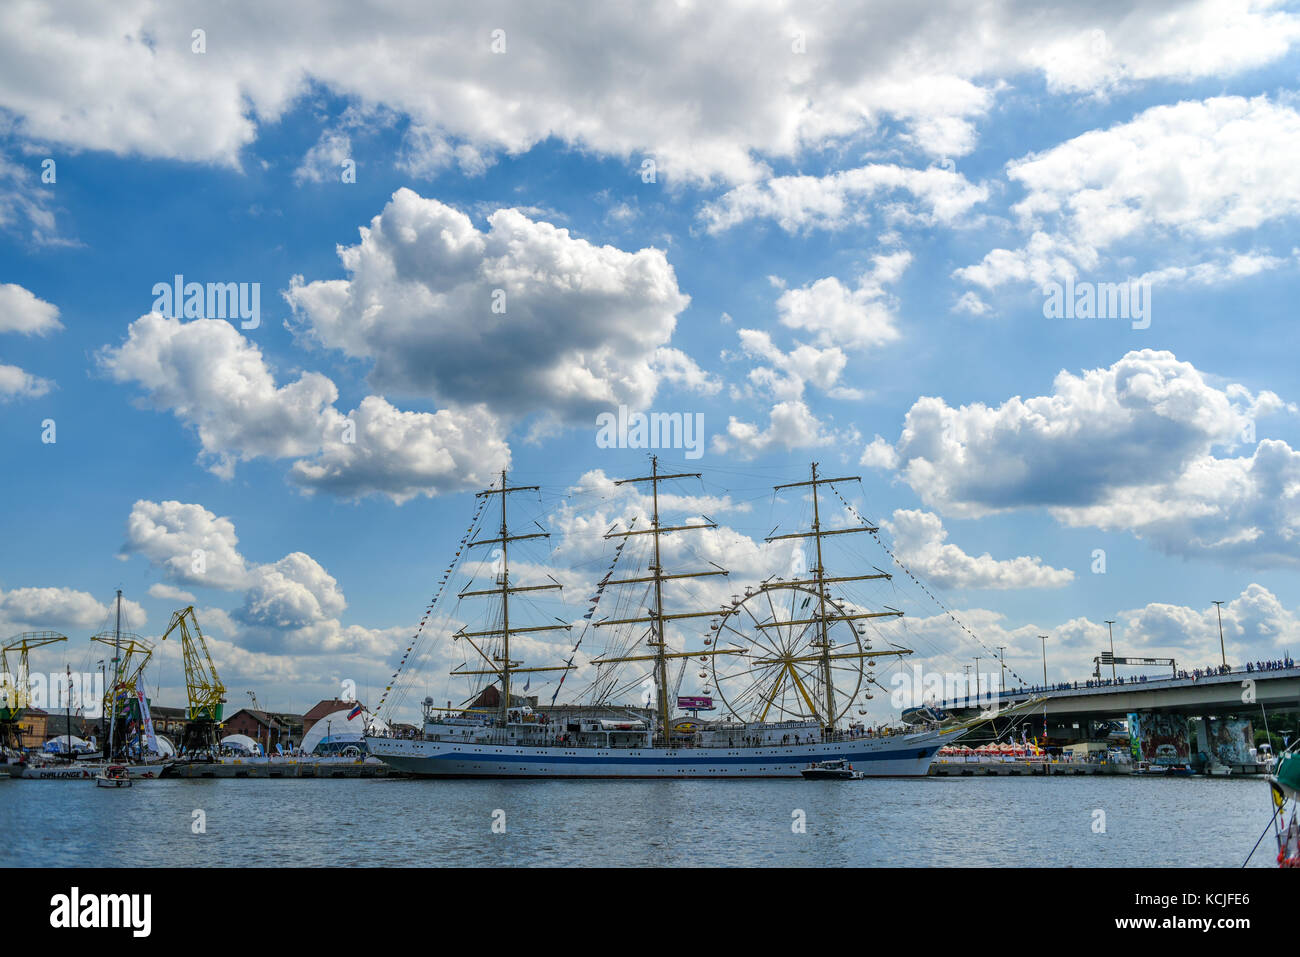 Szczecin, Poland, 7 august 2017: Ship at the quay during the finale of The Tall Ships Races 2017 in Szczecin. - Stock Image